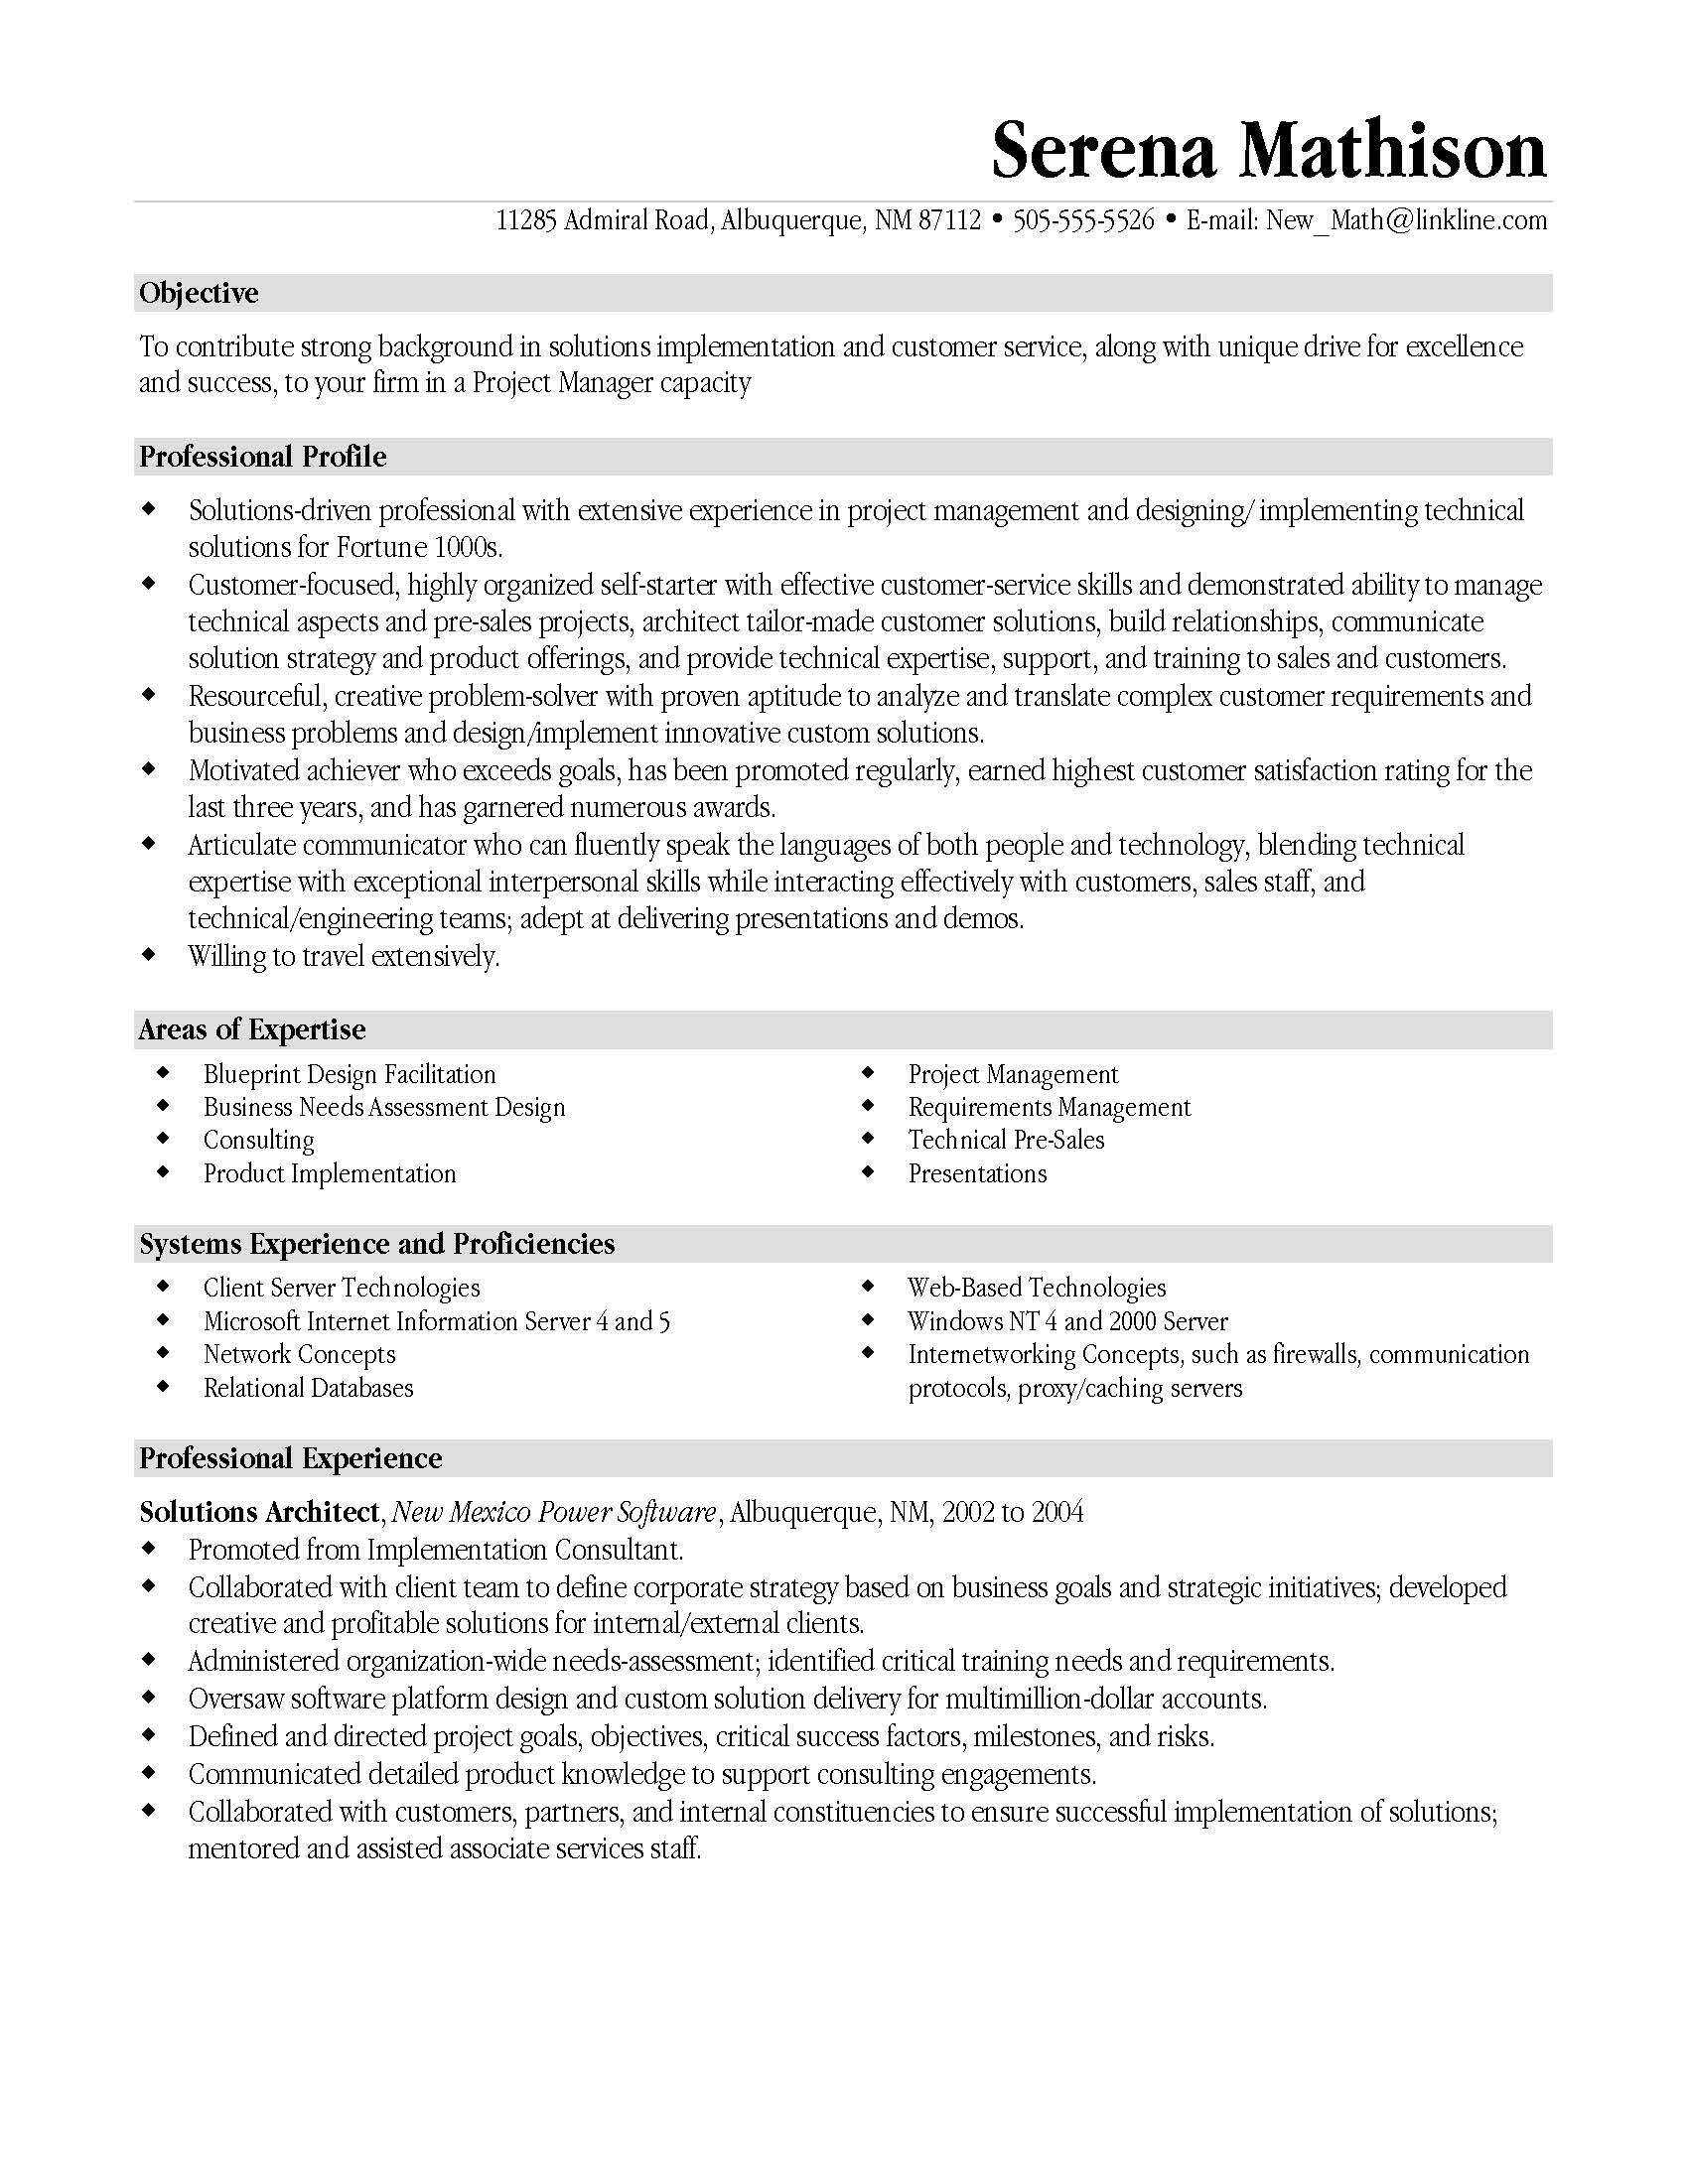 qualifications for resume foodcity me